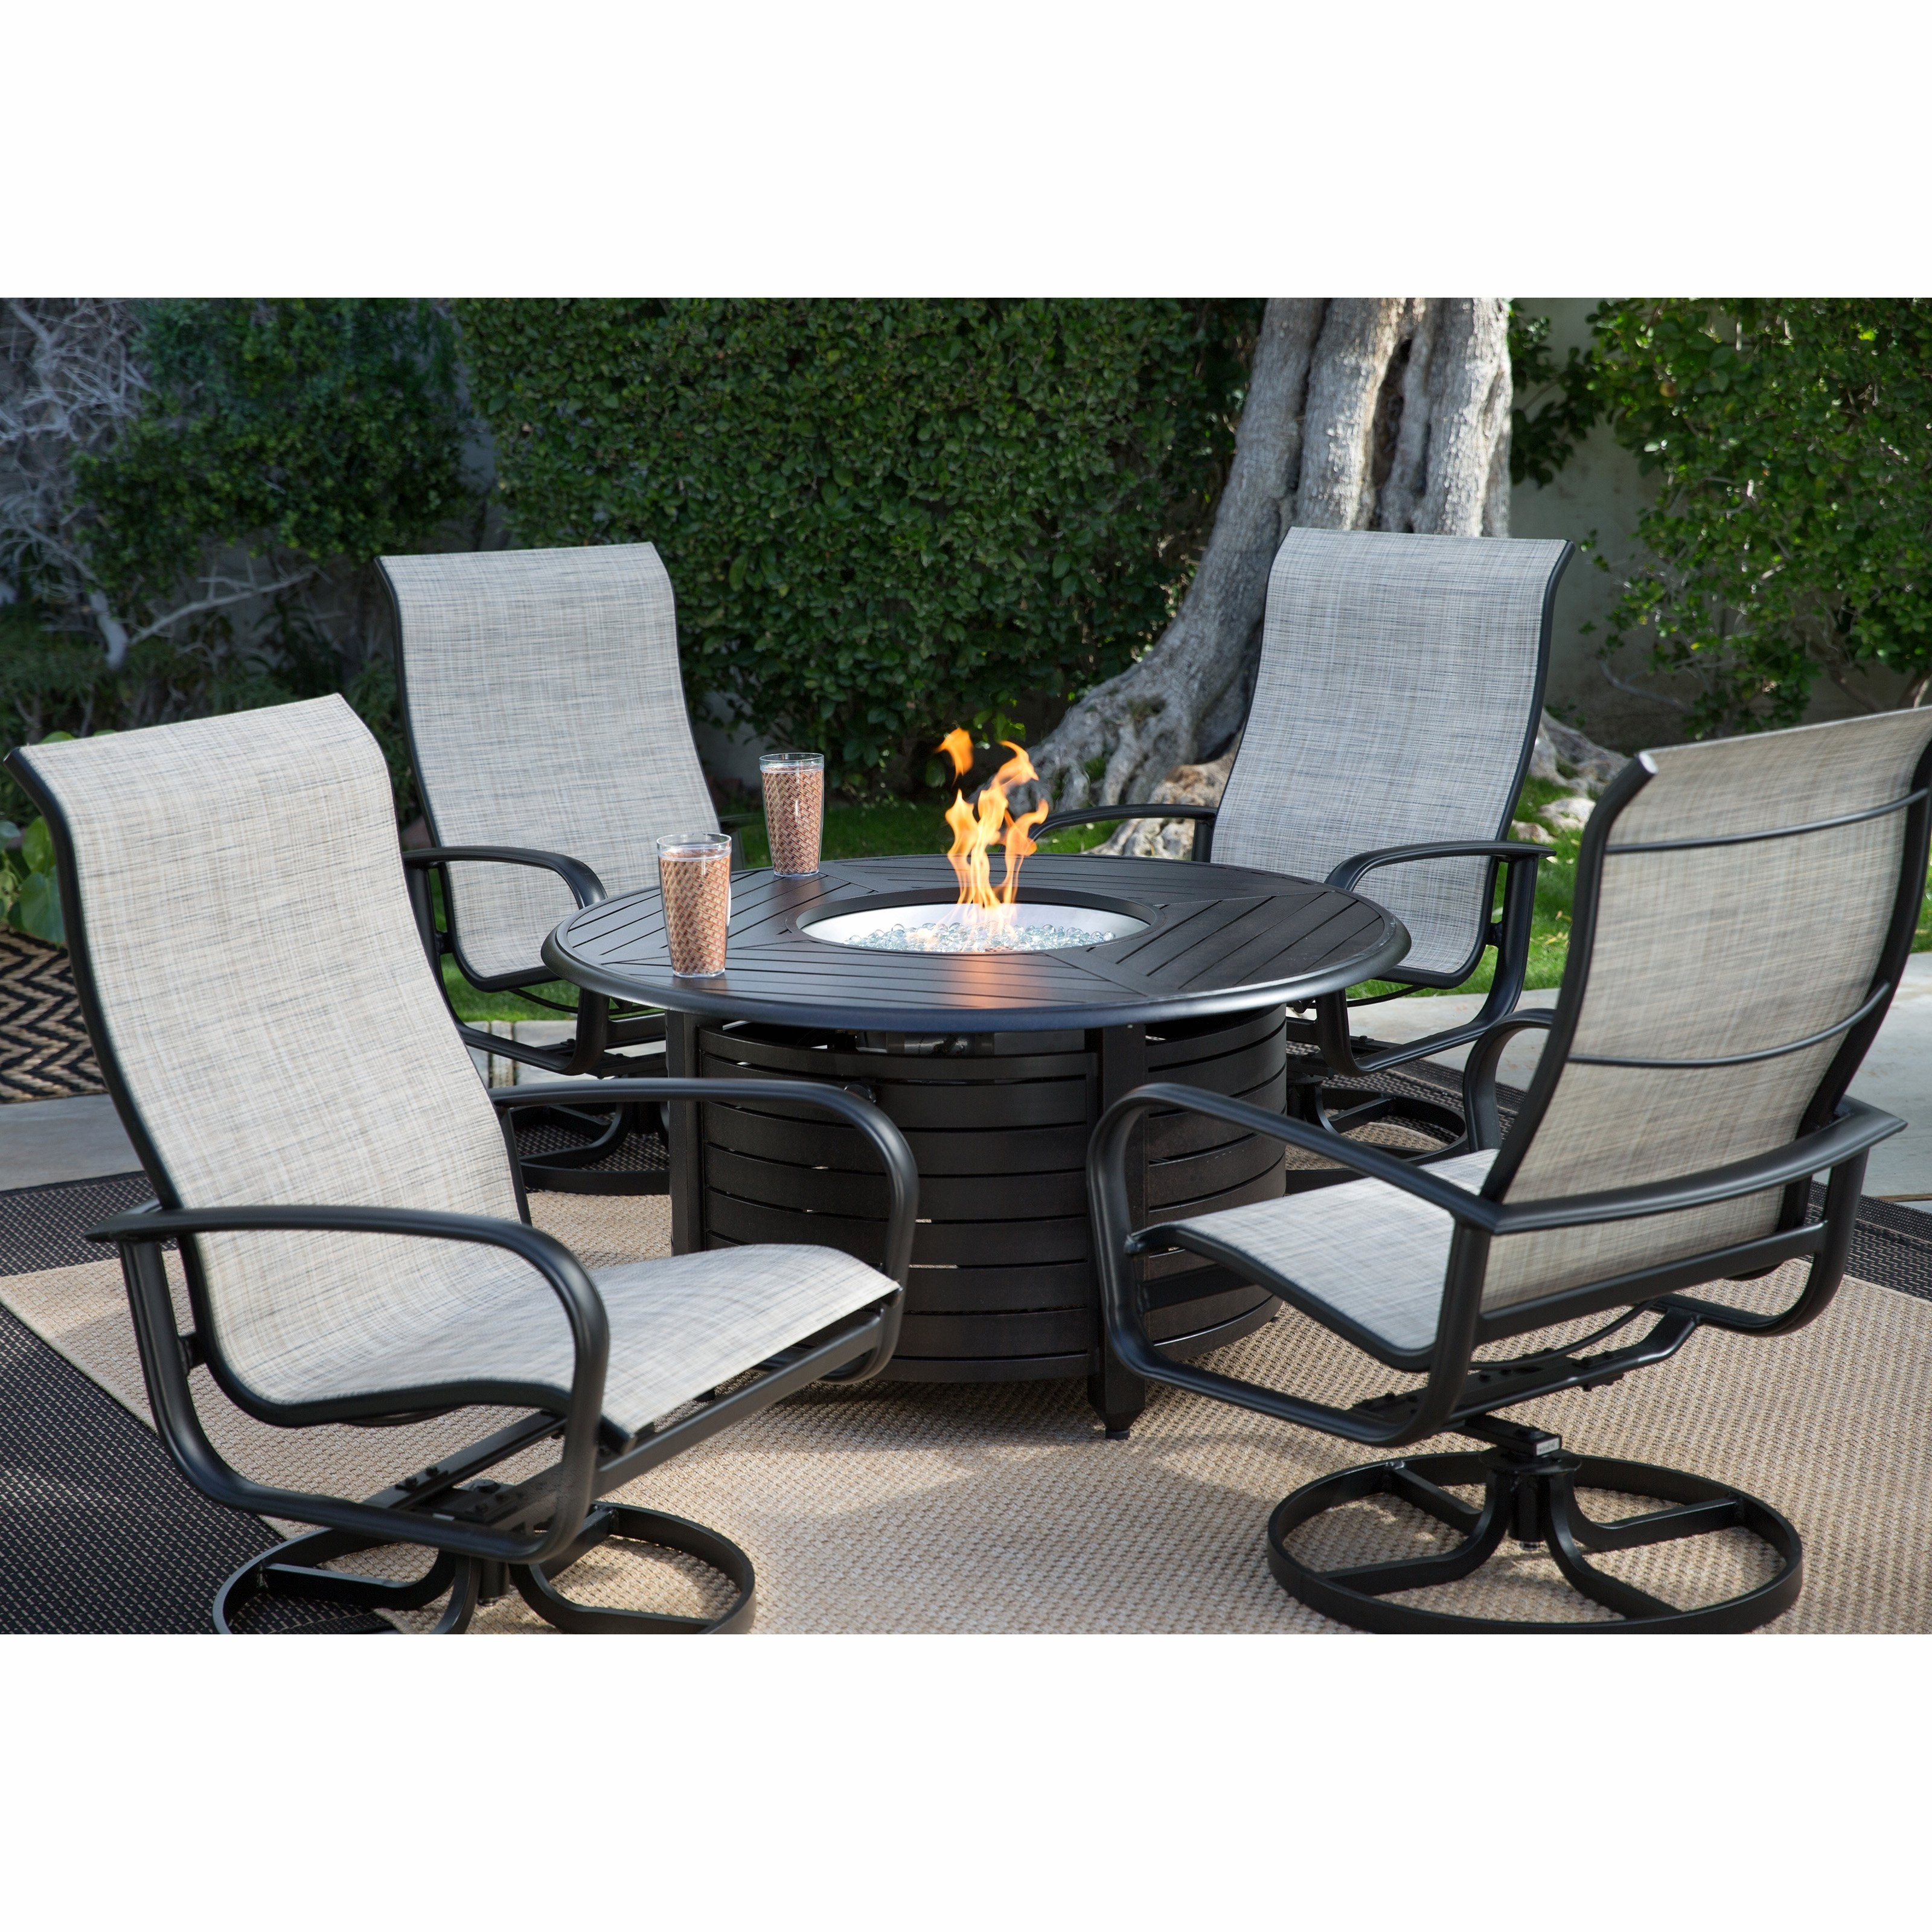 2018 Patio Conversation Sets With Gas Fire Pit In Patio Furniture With Gas Fire Pit Elegant Conversation Sets Outdoor (View 15 of 20)